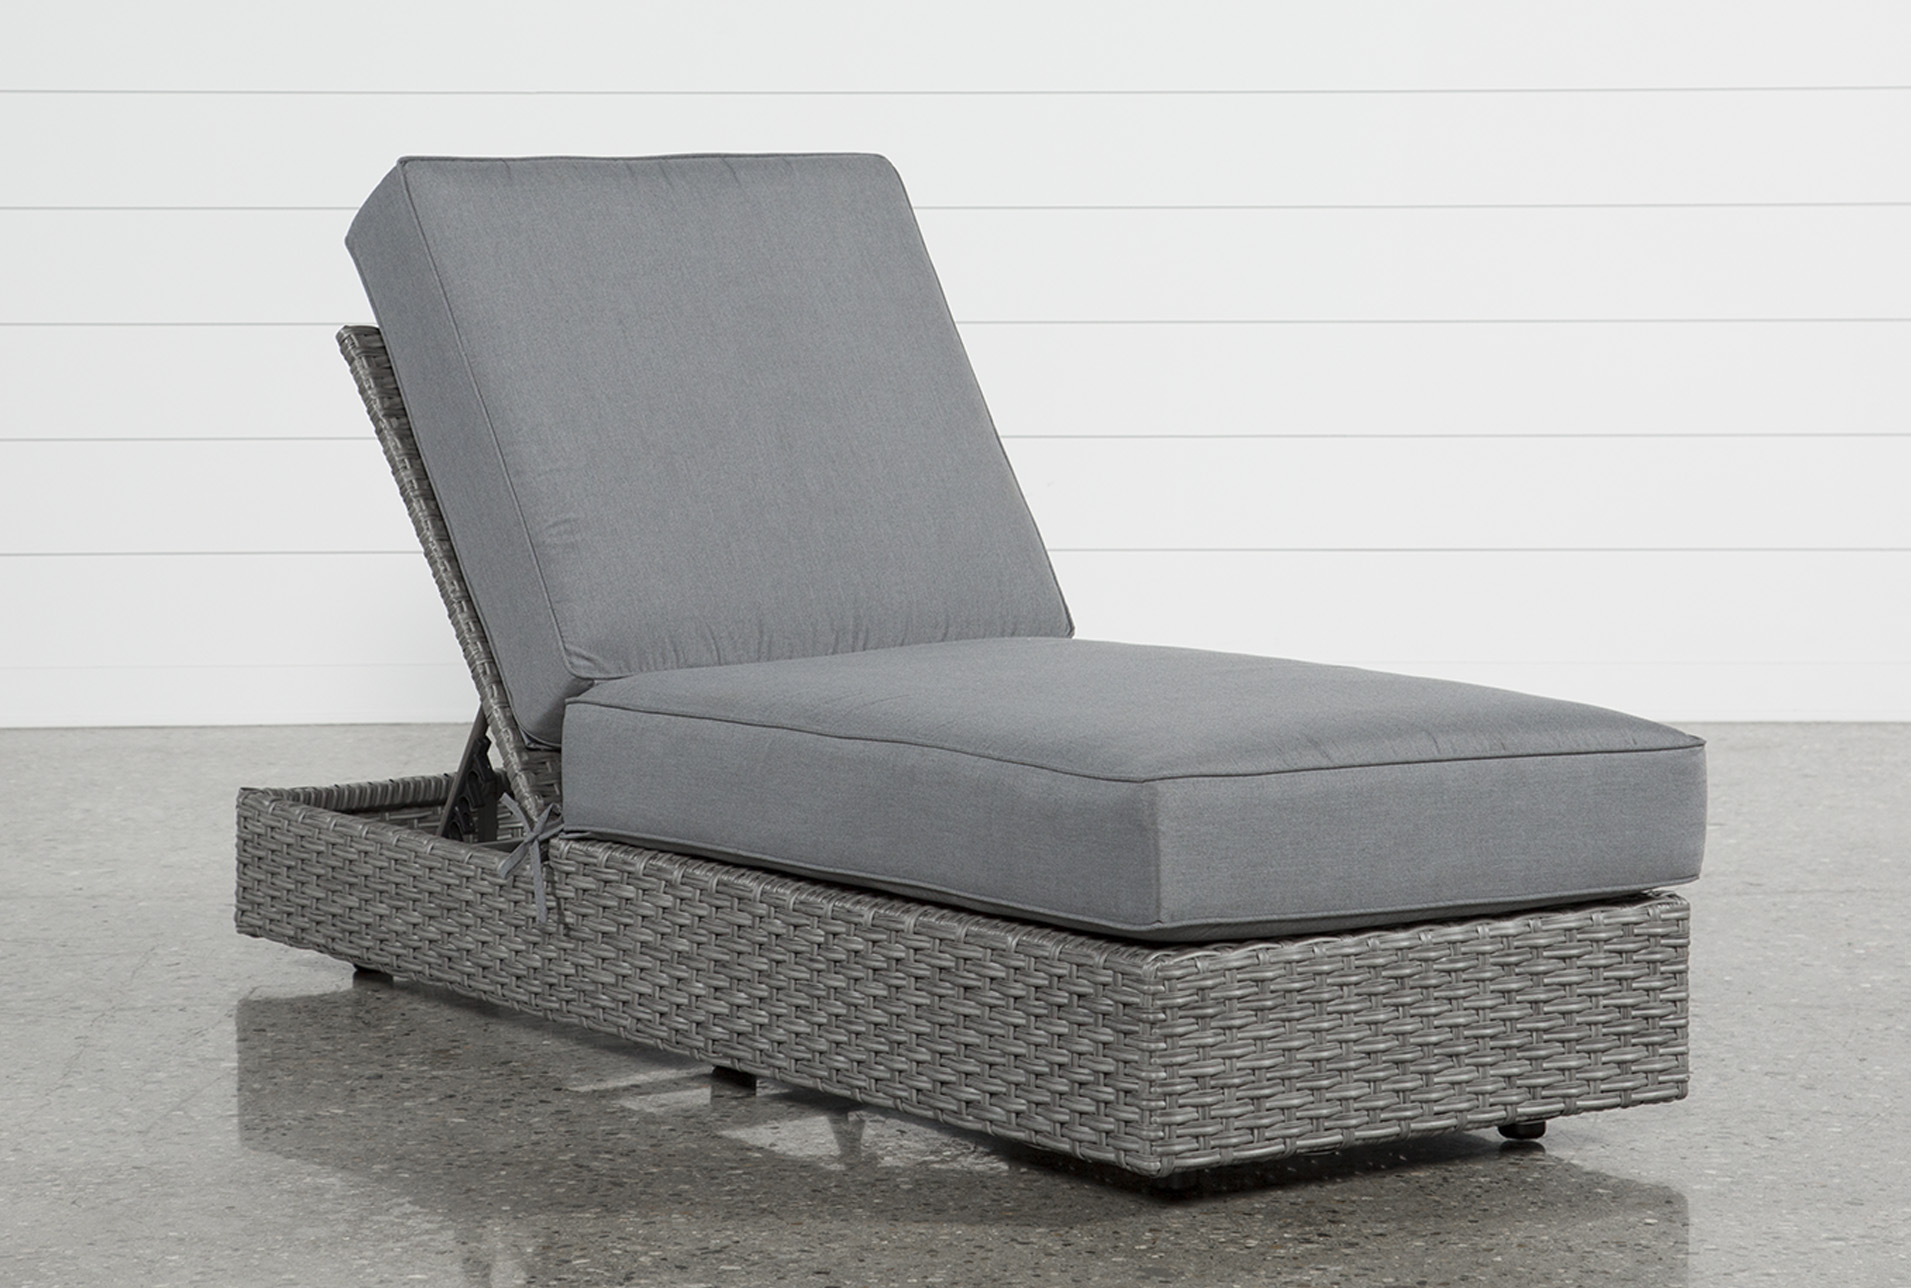 Outdoor Koro Chaise Lounge (Qty: 1) has been successfully added to your  Cart.